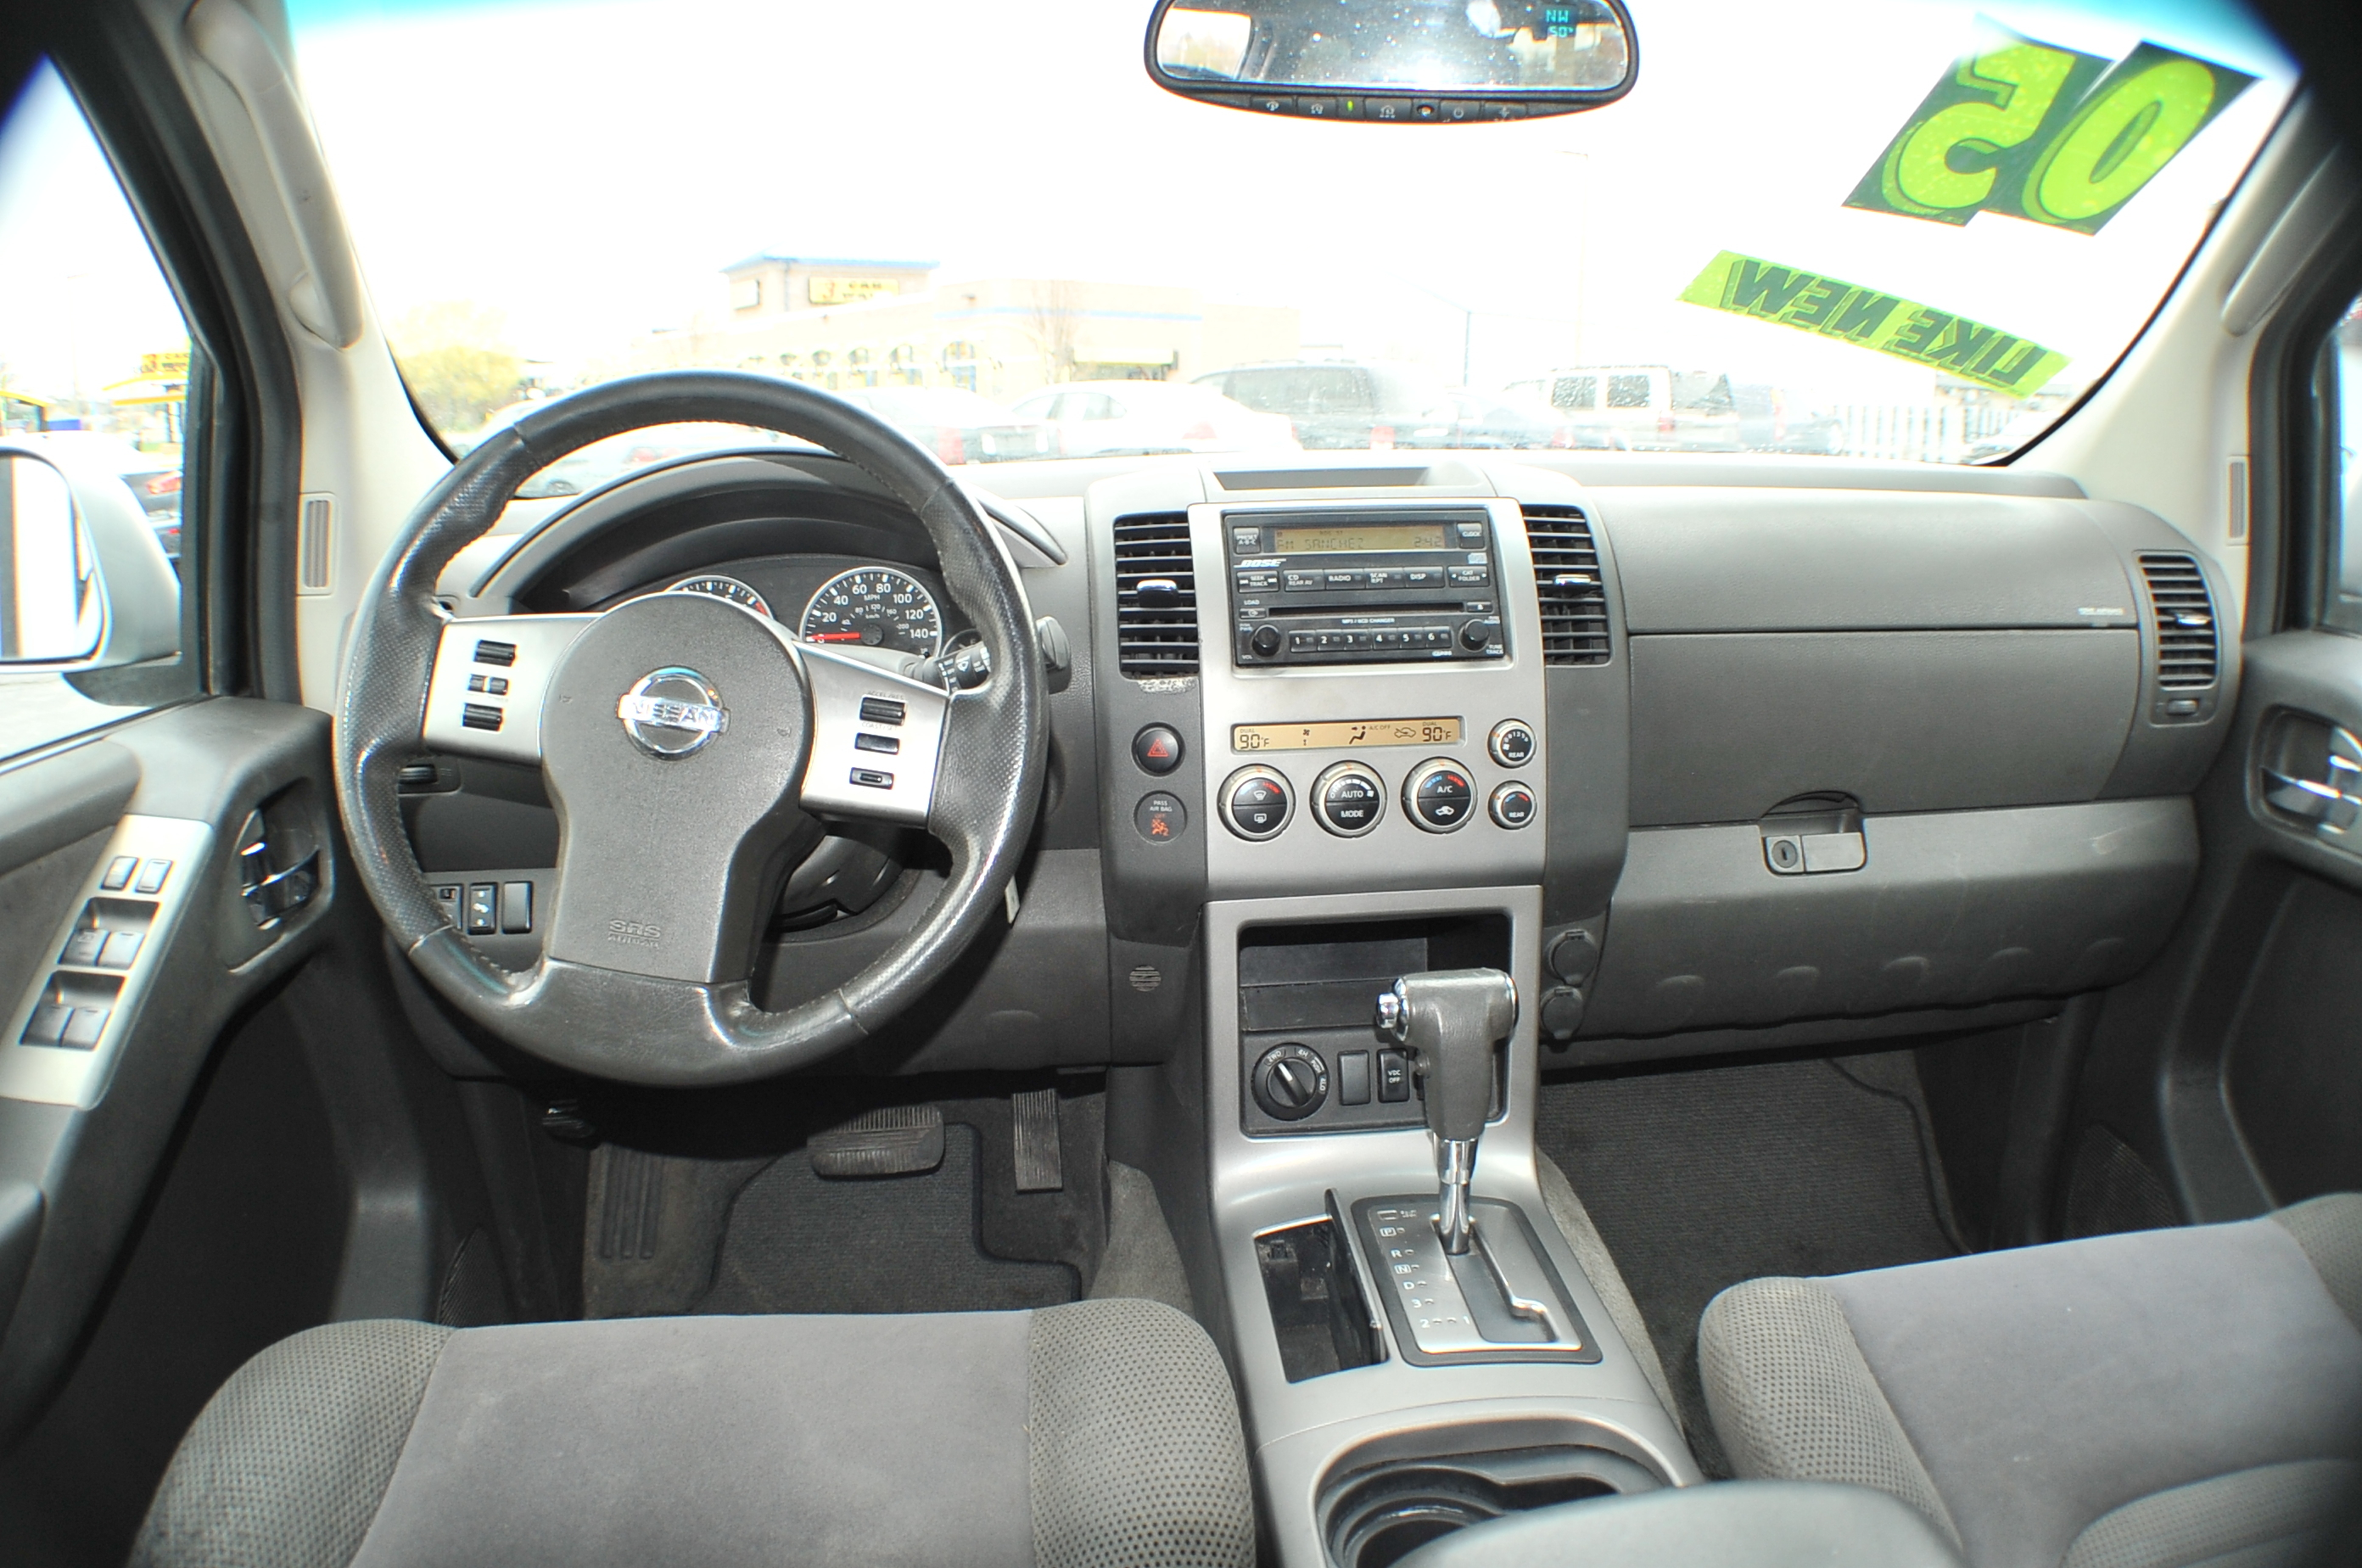 2005 Nissan Pathfinder SE Silver Used SUV 4x4 Sale Fox River Grove Grayslake Volo